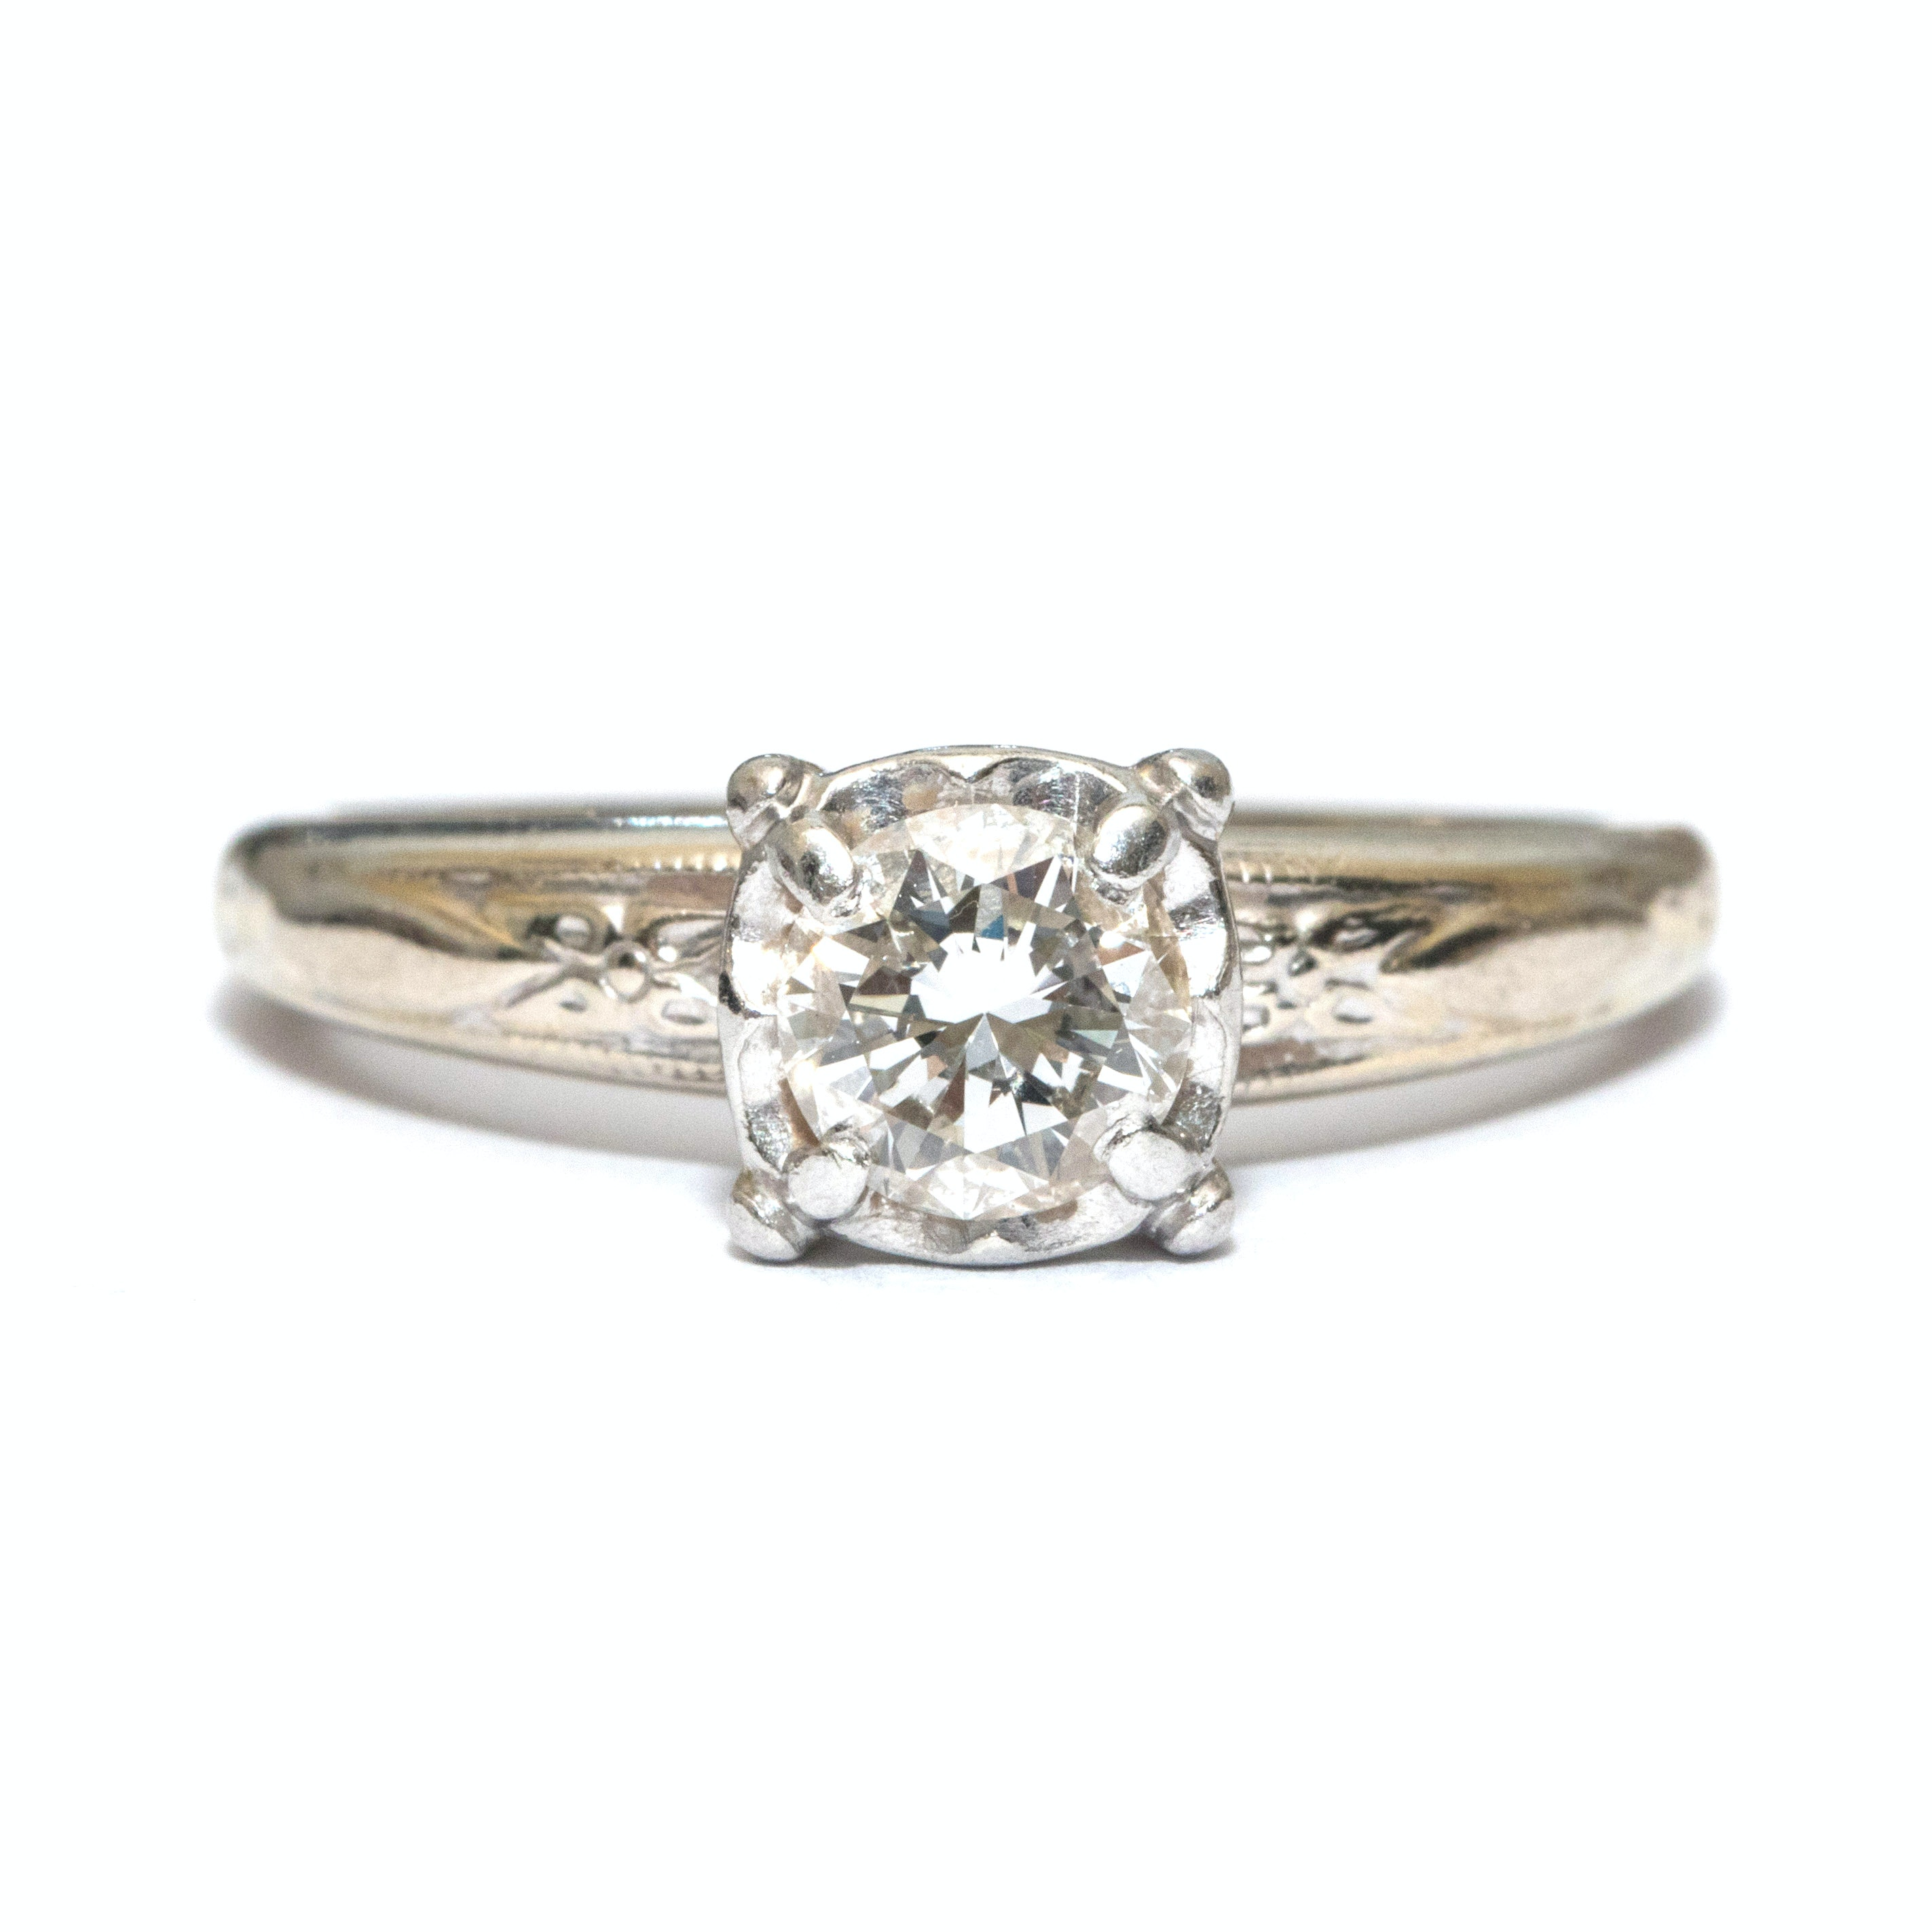 14K Platinum and Diamond Solitaire Engagement Ring